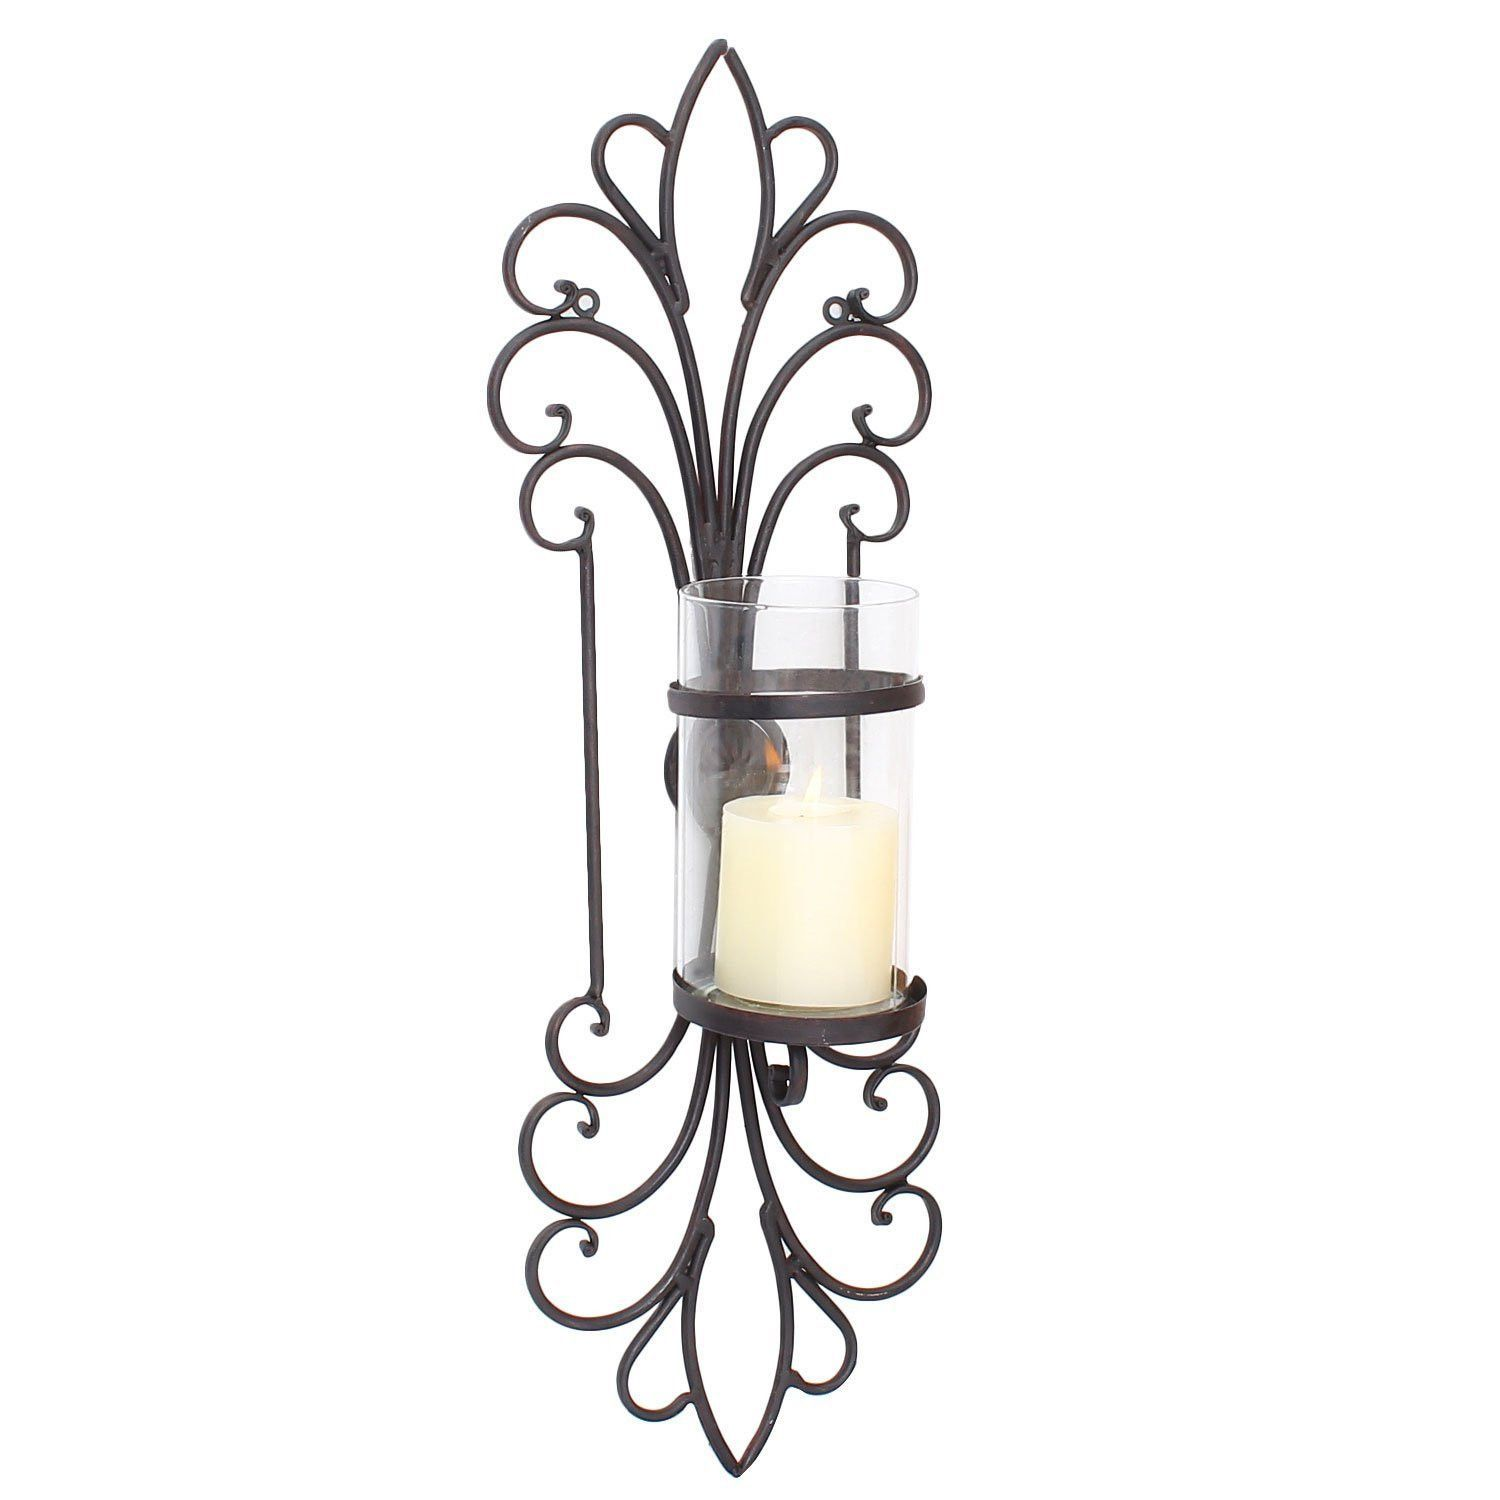 Decorative Iron Pillar Candle Sconce With Glass (1 Only